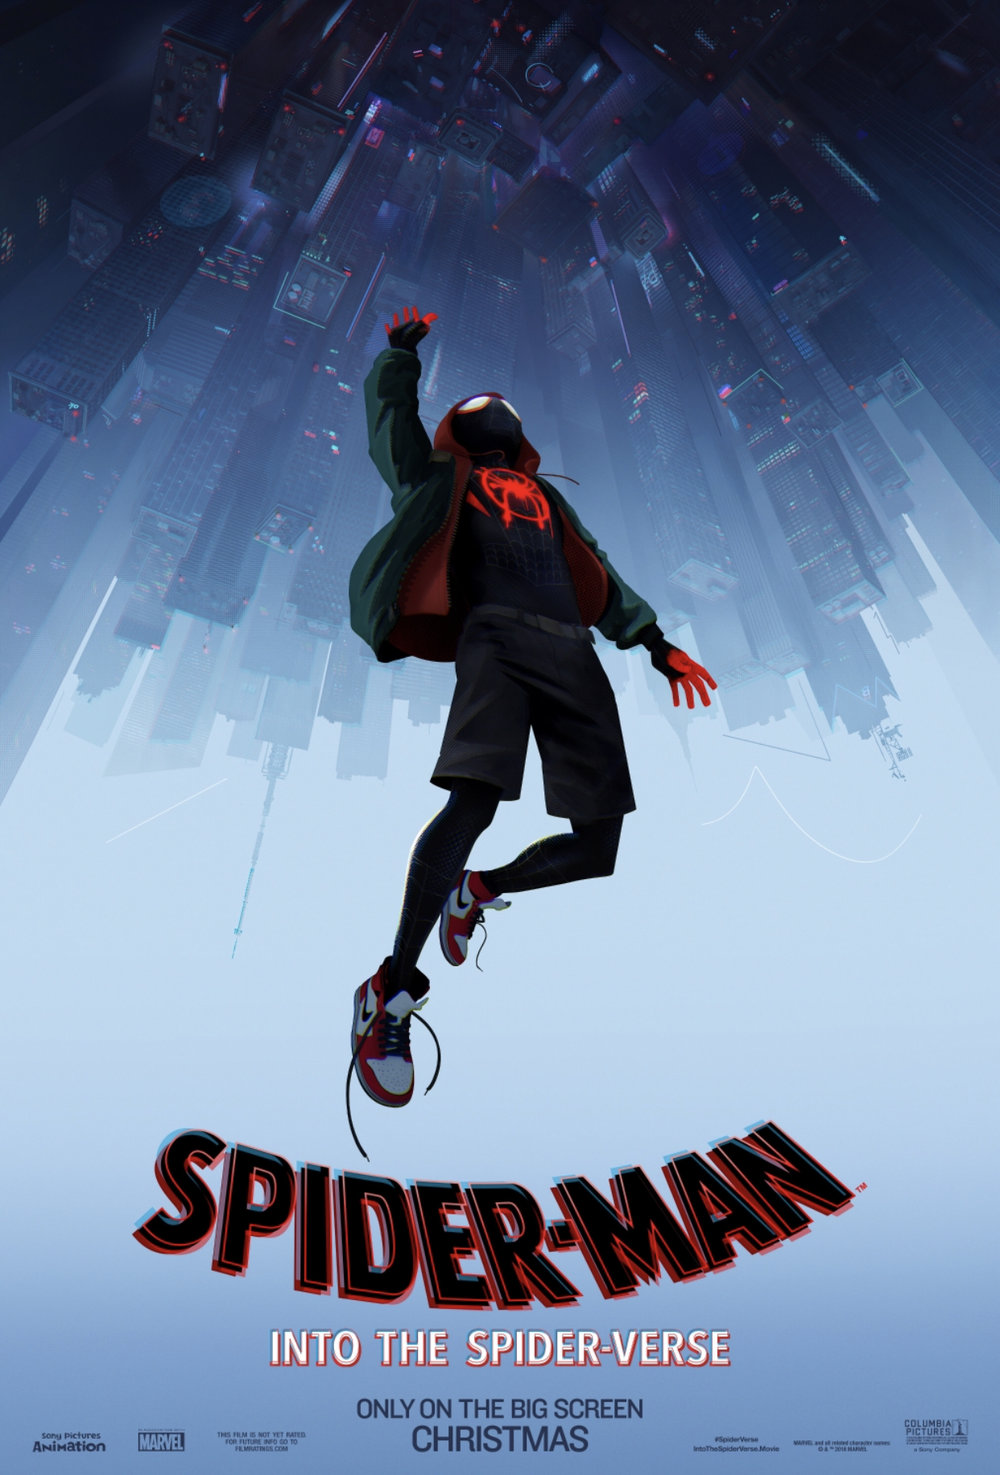 Spider-man-into-spiderverse-3d-movie.JPG